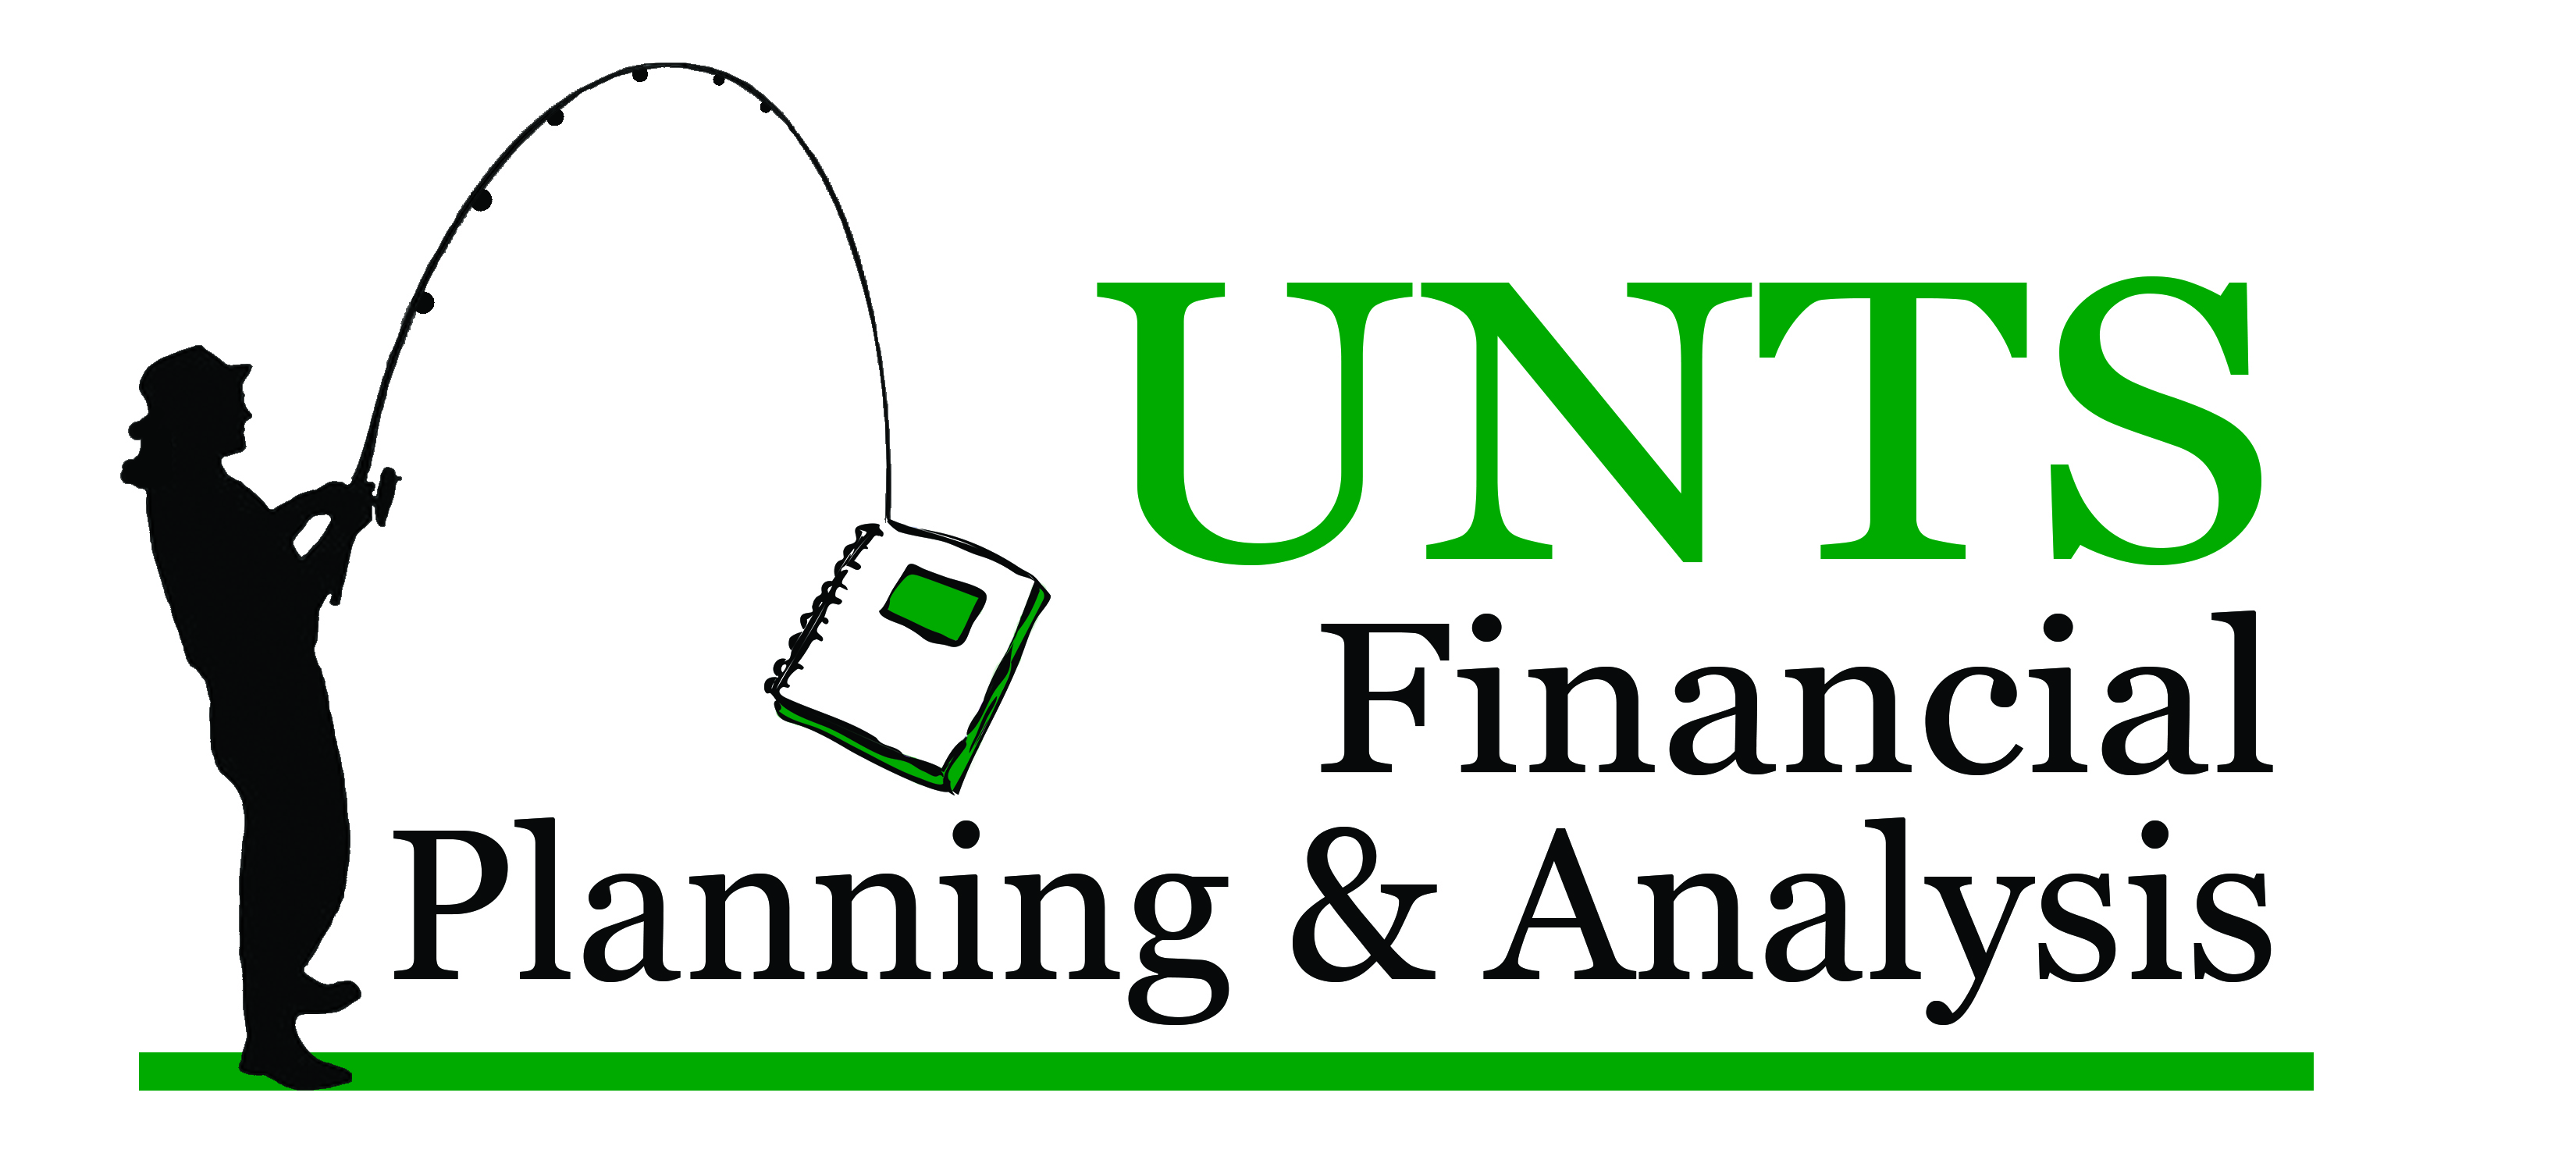 UNTS Financial Planning and Analysis